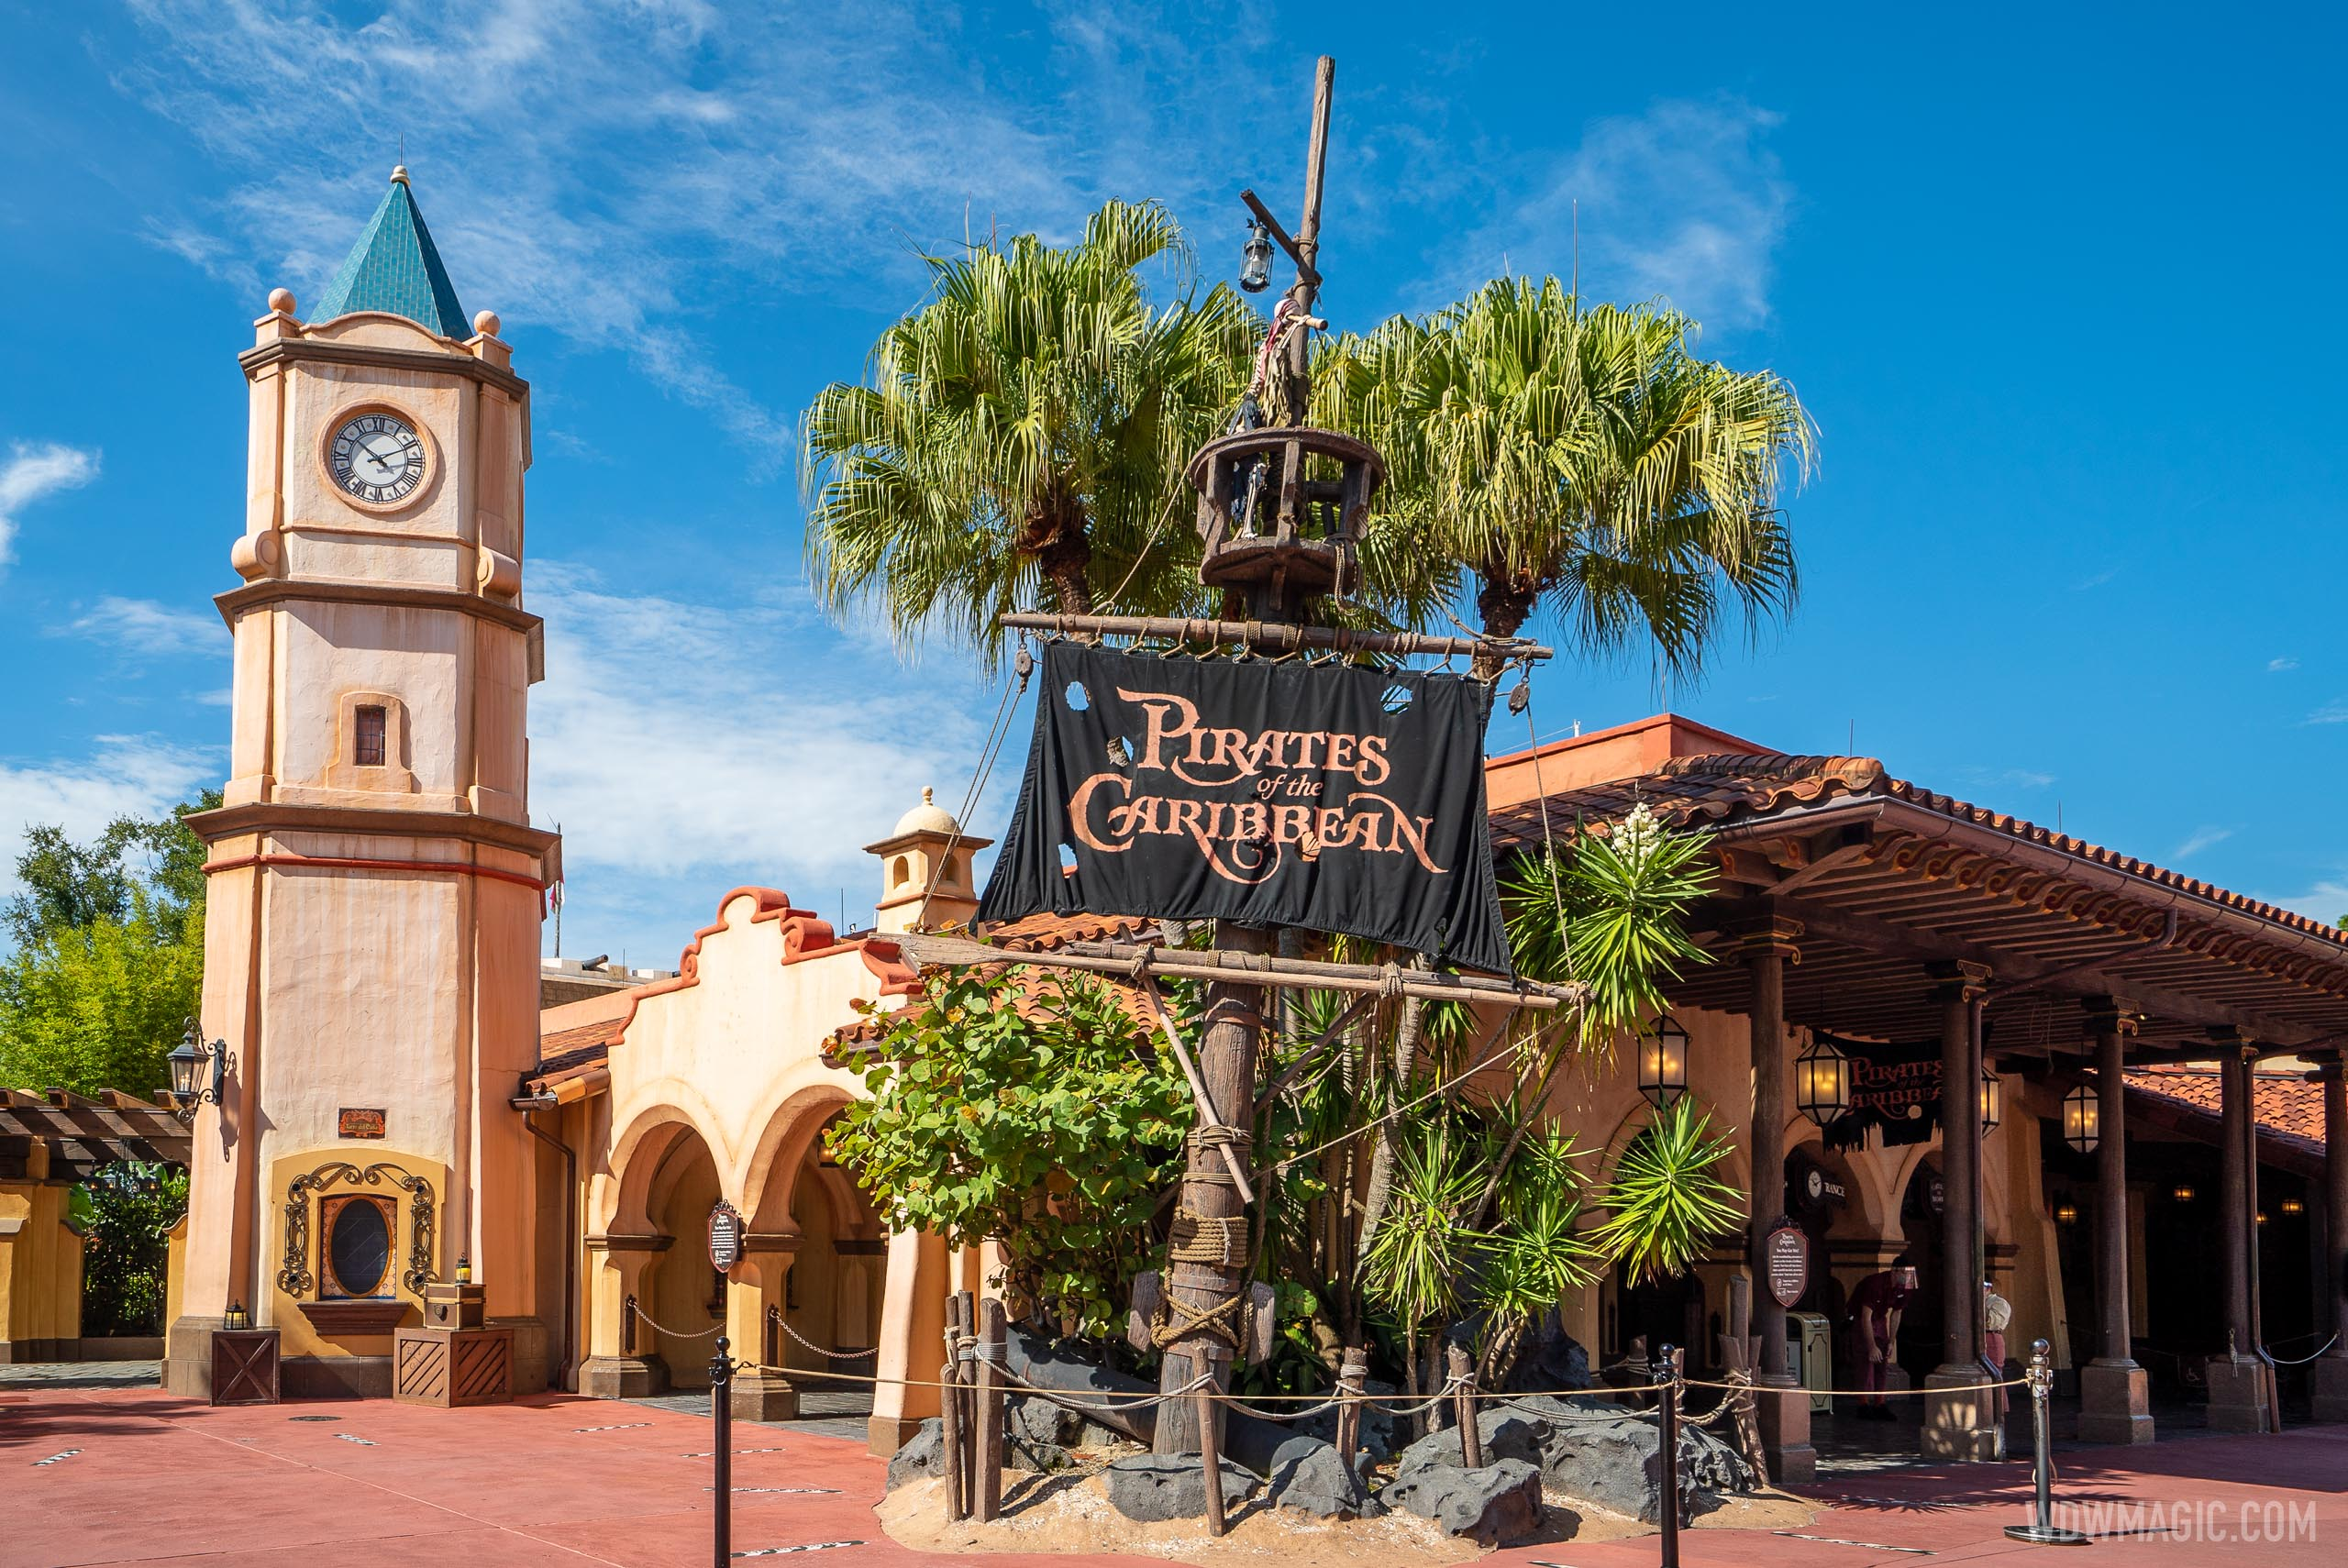 Pirates of the Caribbean overview